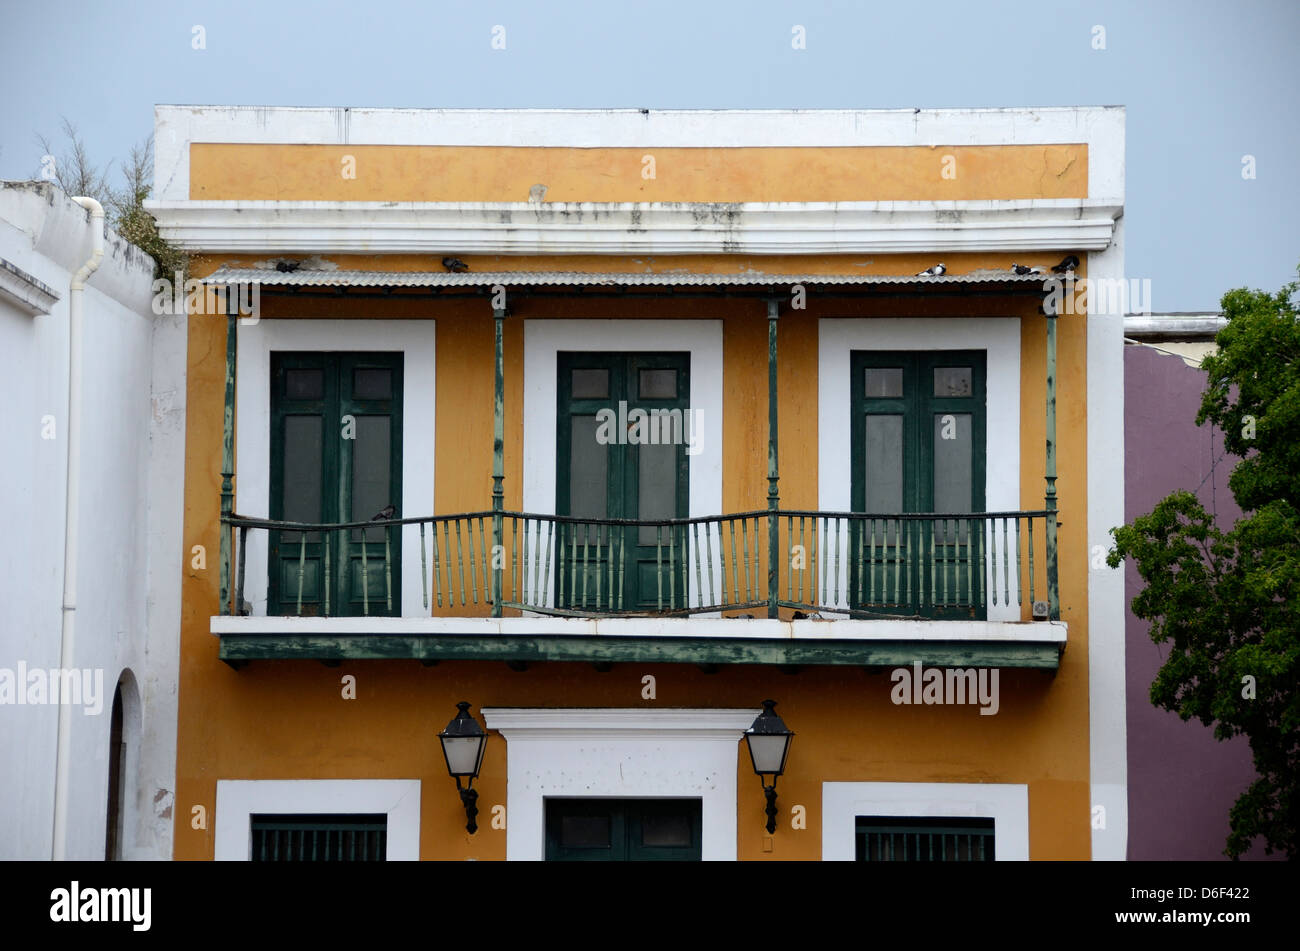 Old yellow building in Old San Juan, Puerto Rico - Stock Image